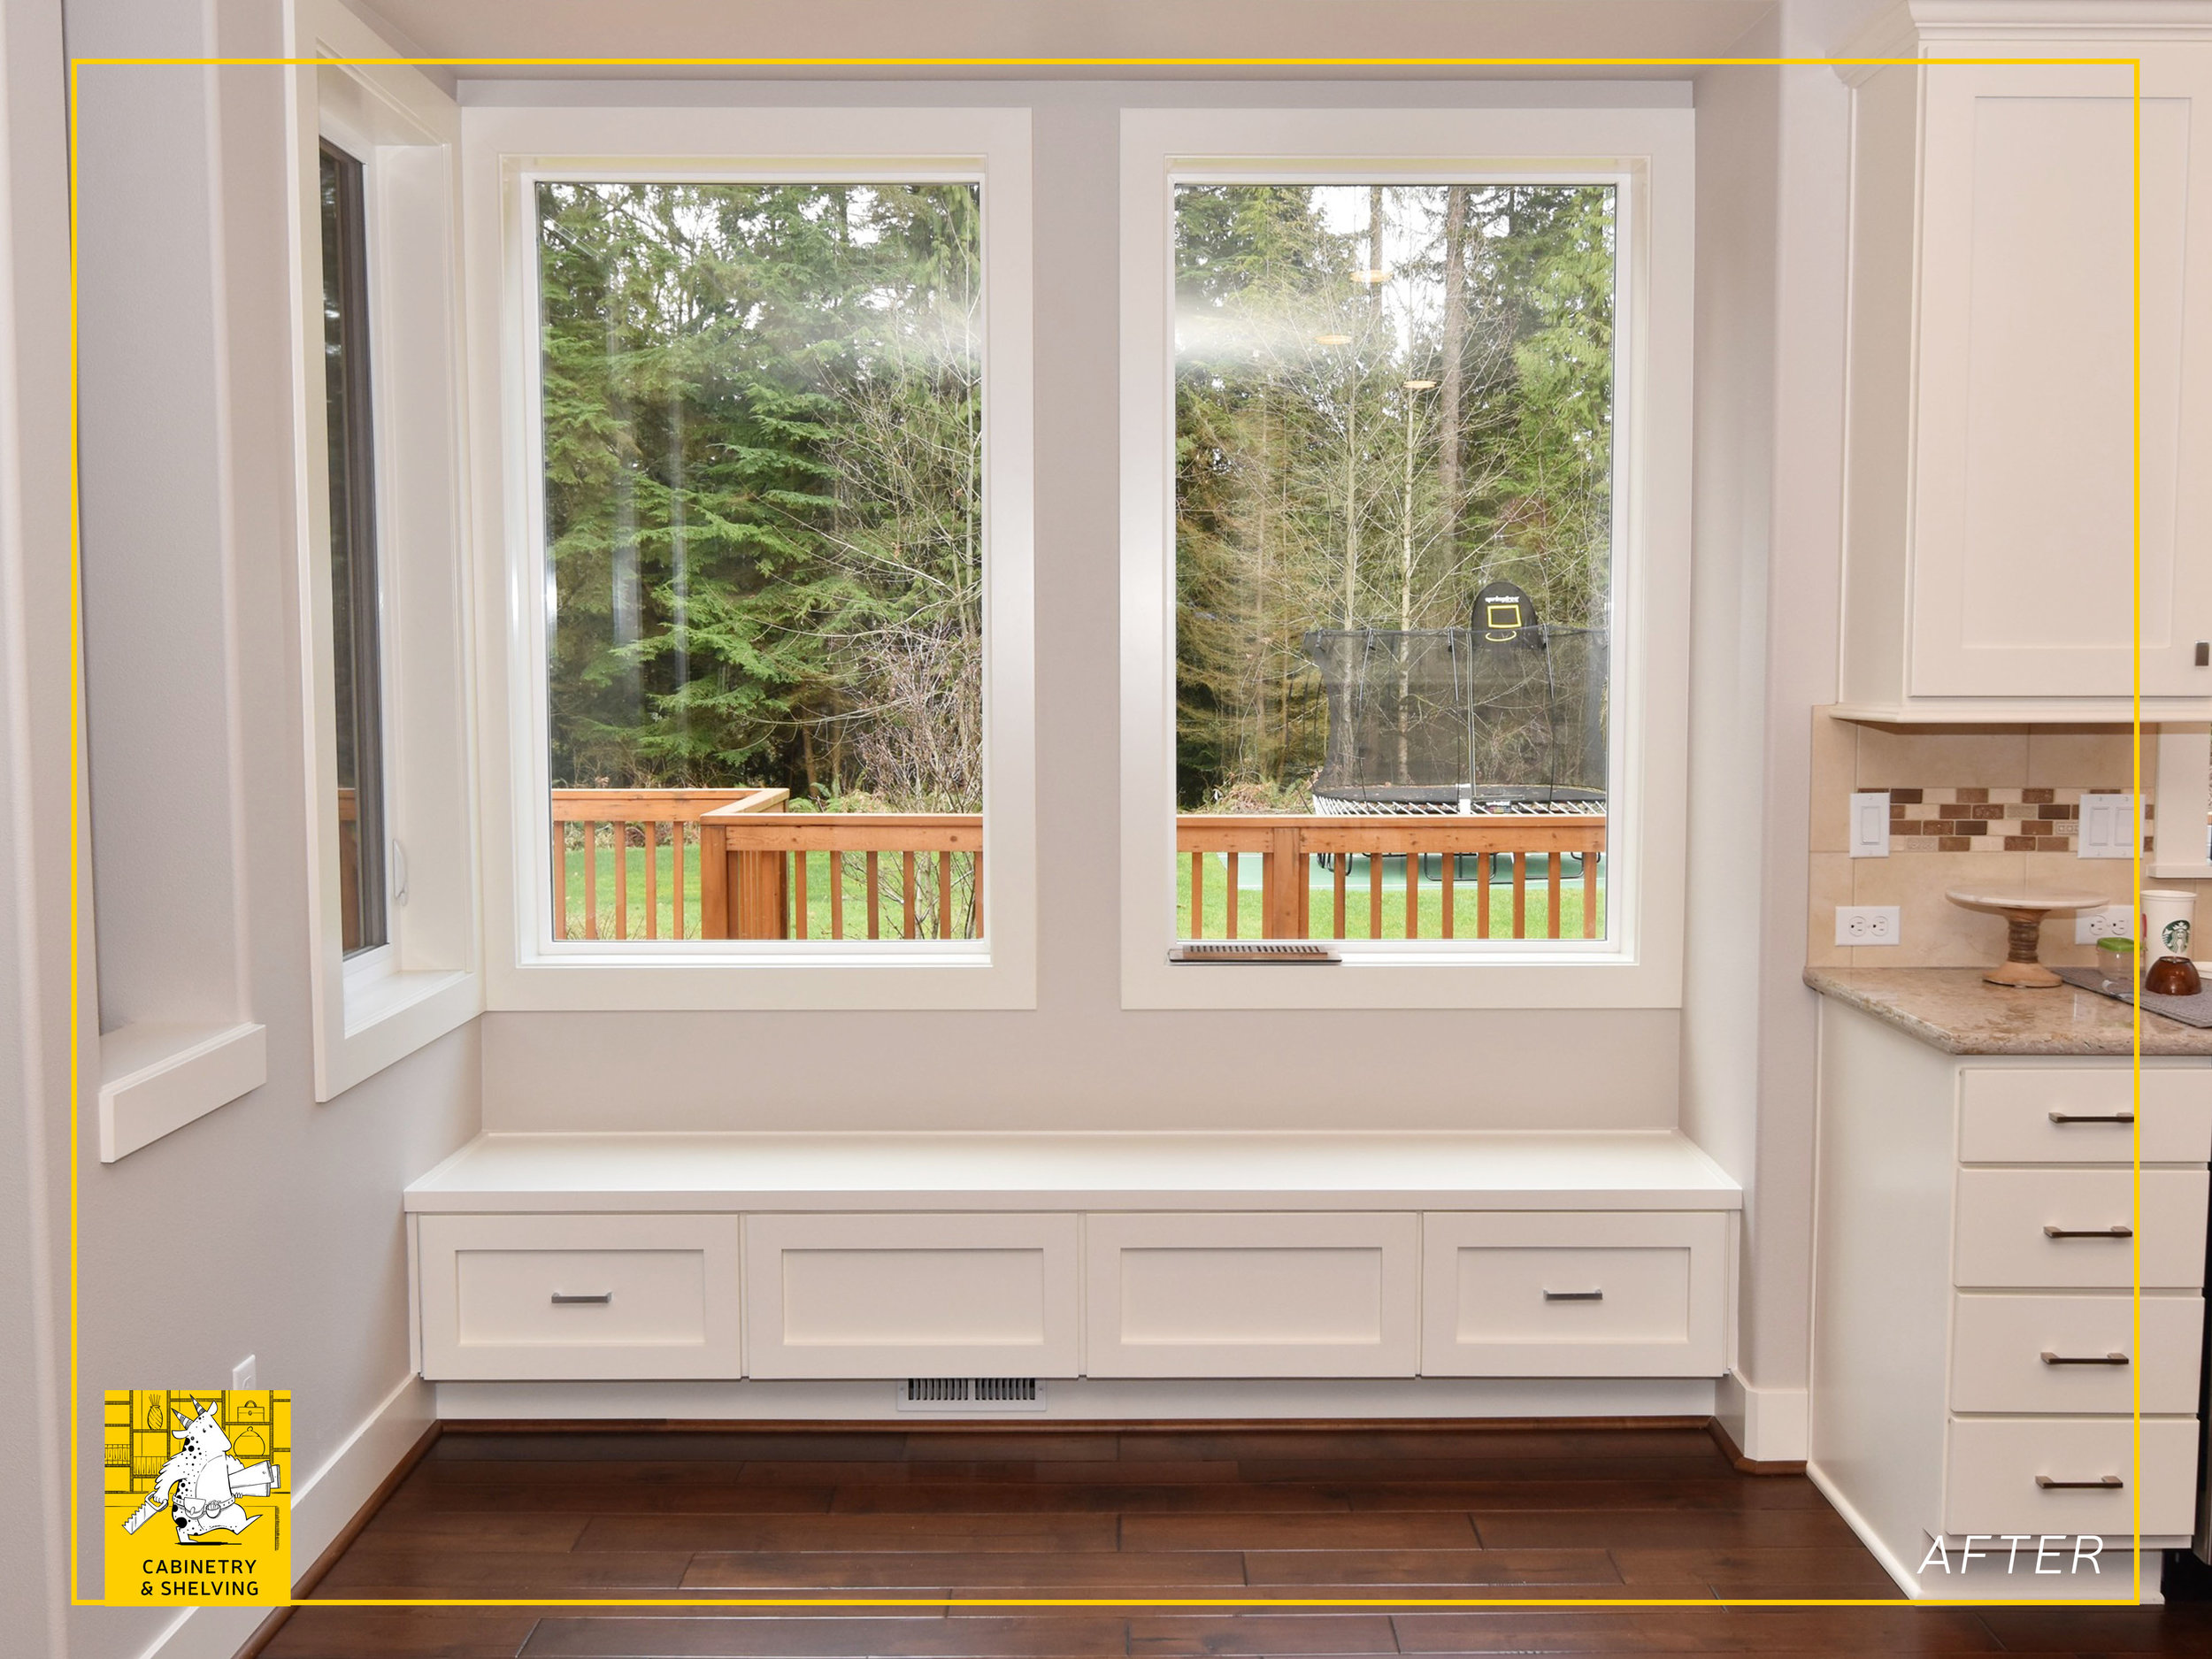 cabinetry 4 after 1.jpg